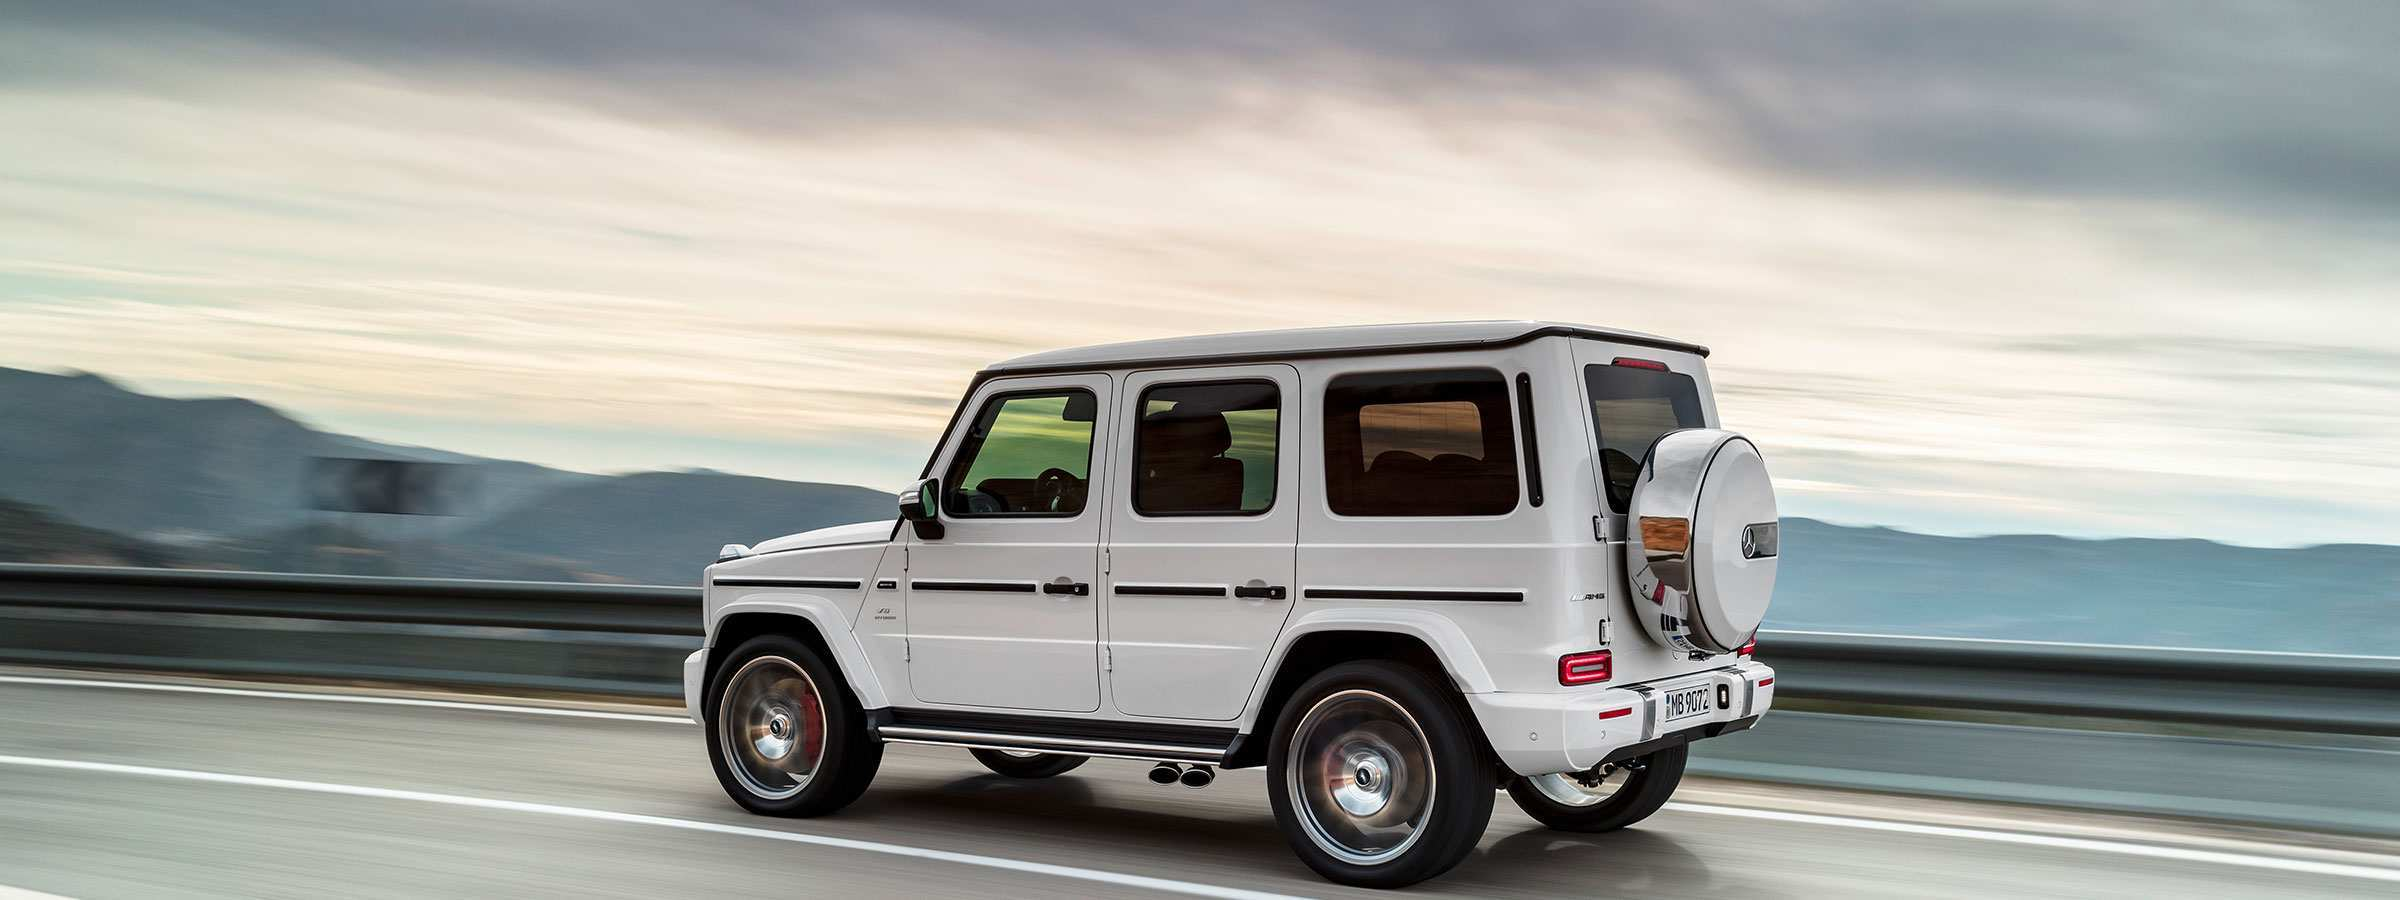 55 New G63 Mercedes 2020 Images with G63 Mercedes 2020